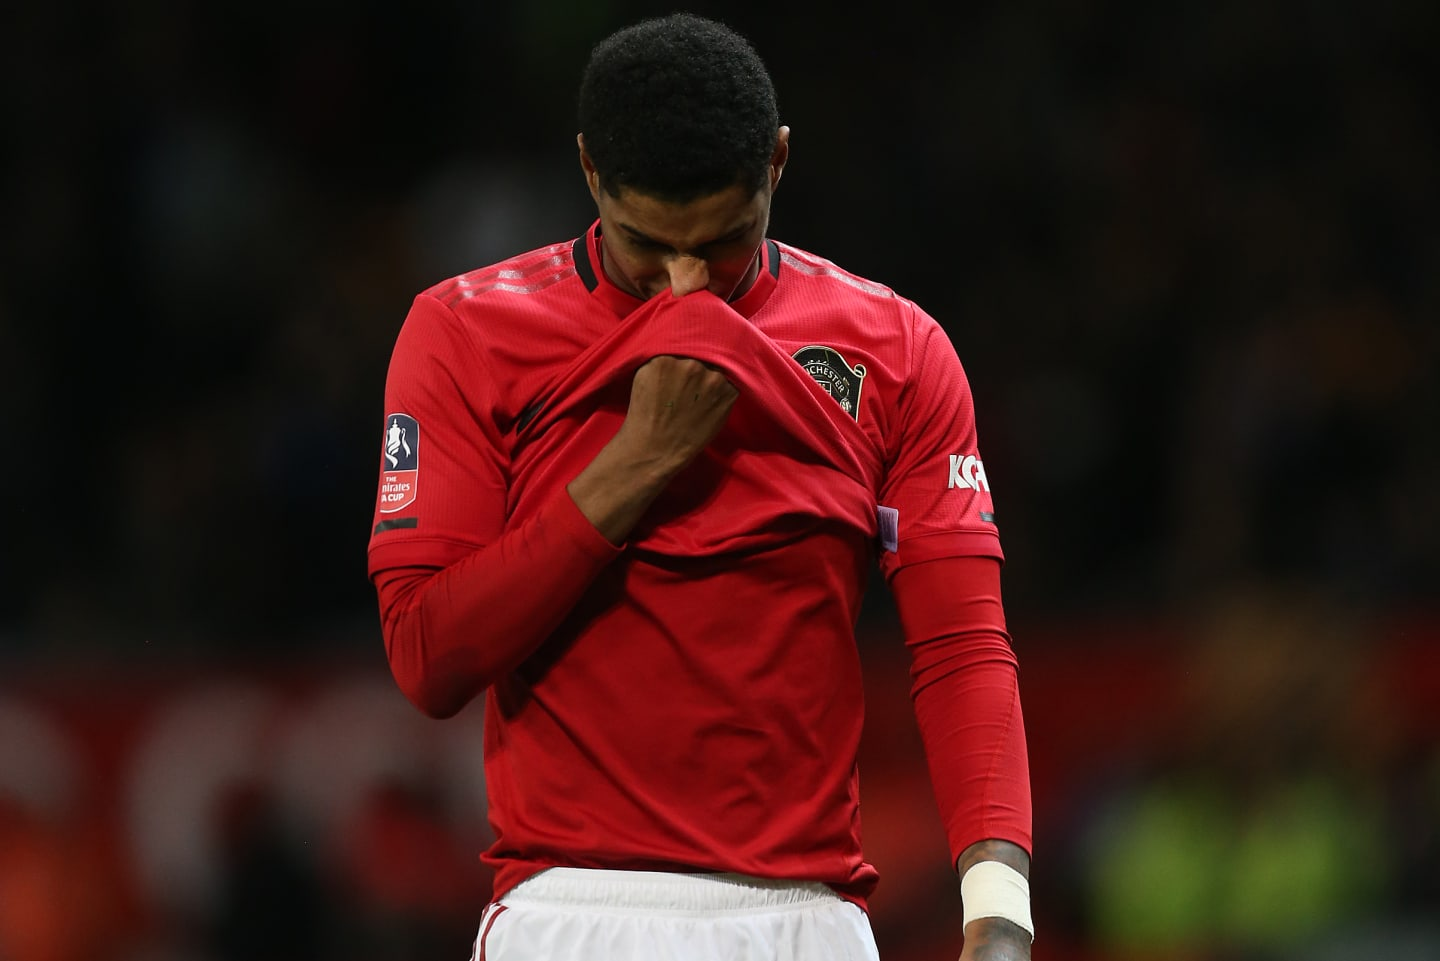 Ole Gunnar Solskjaer Marcus Rashford Substitution Backfired After Back Injury Bleacher Report Latest News Videos And Highlights